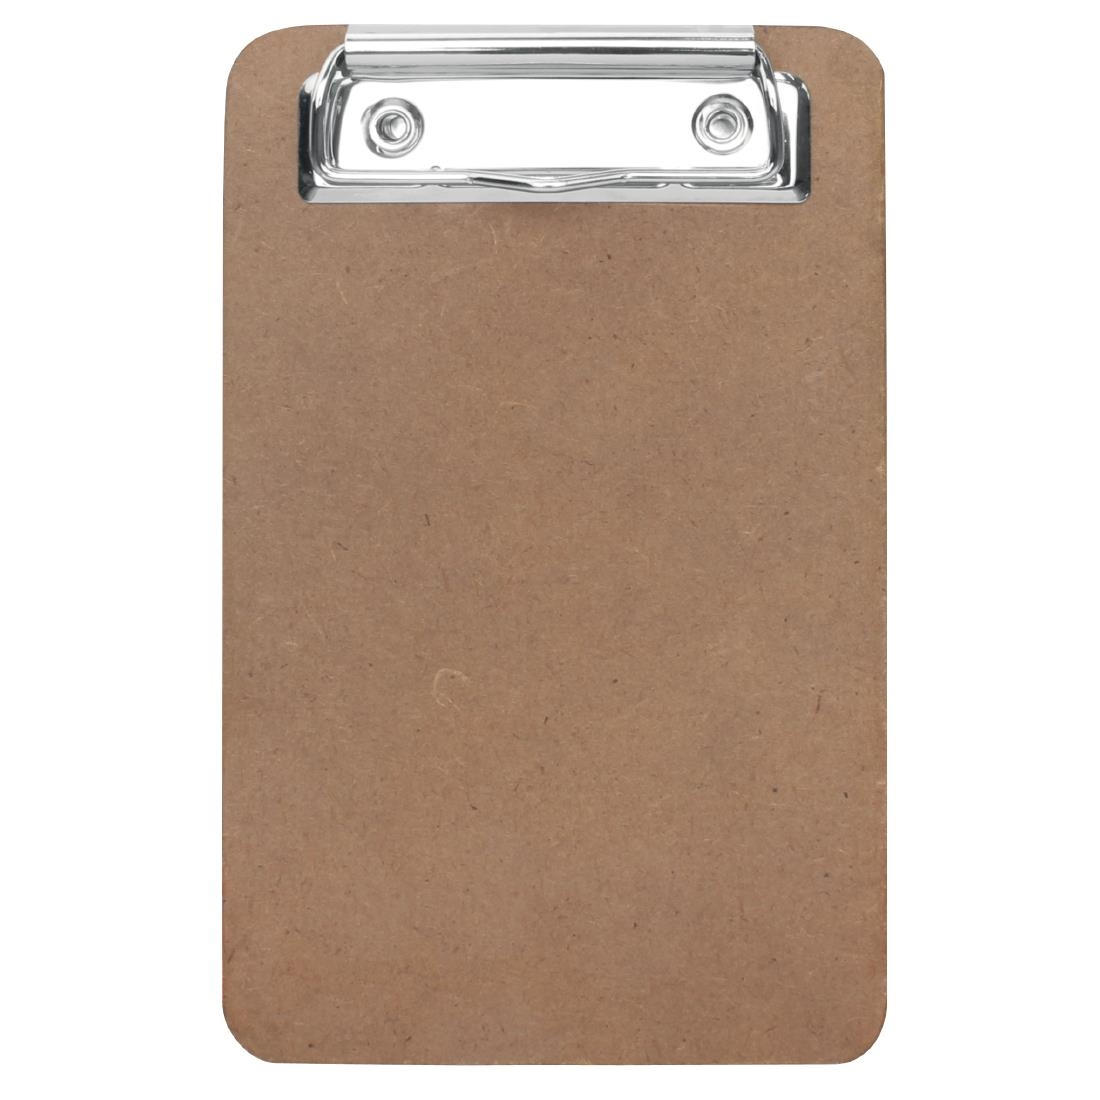 olympia bill presenter mini clipboard cn503 buy online at nisbets